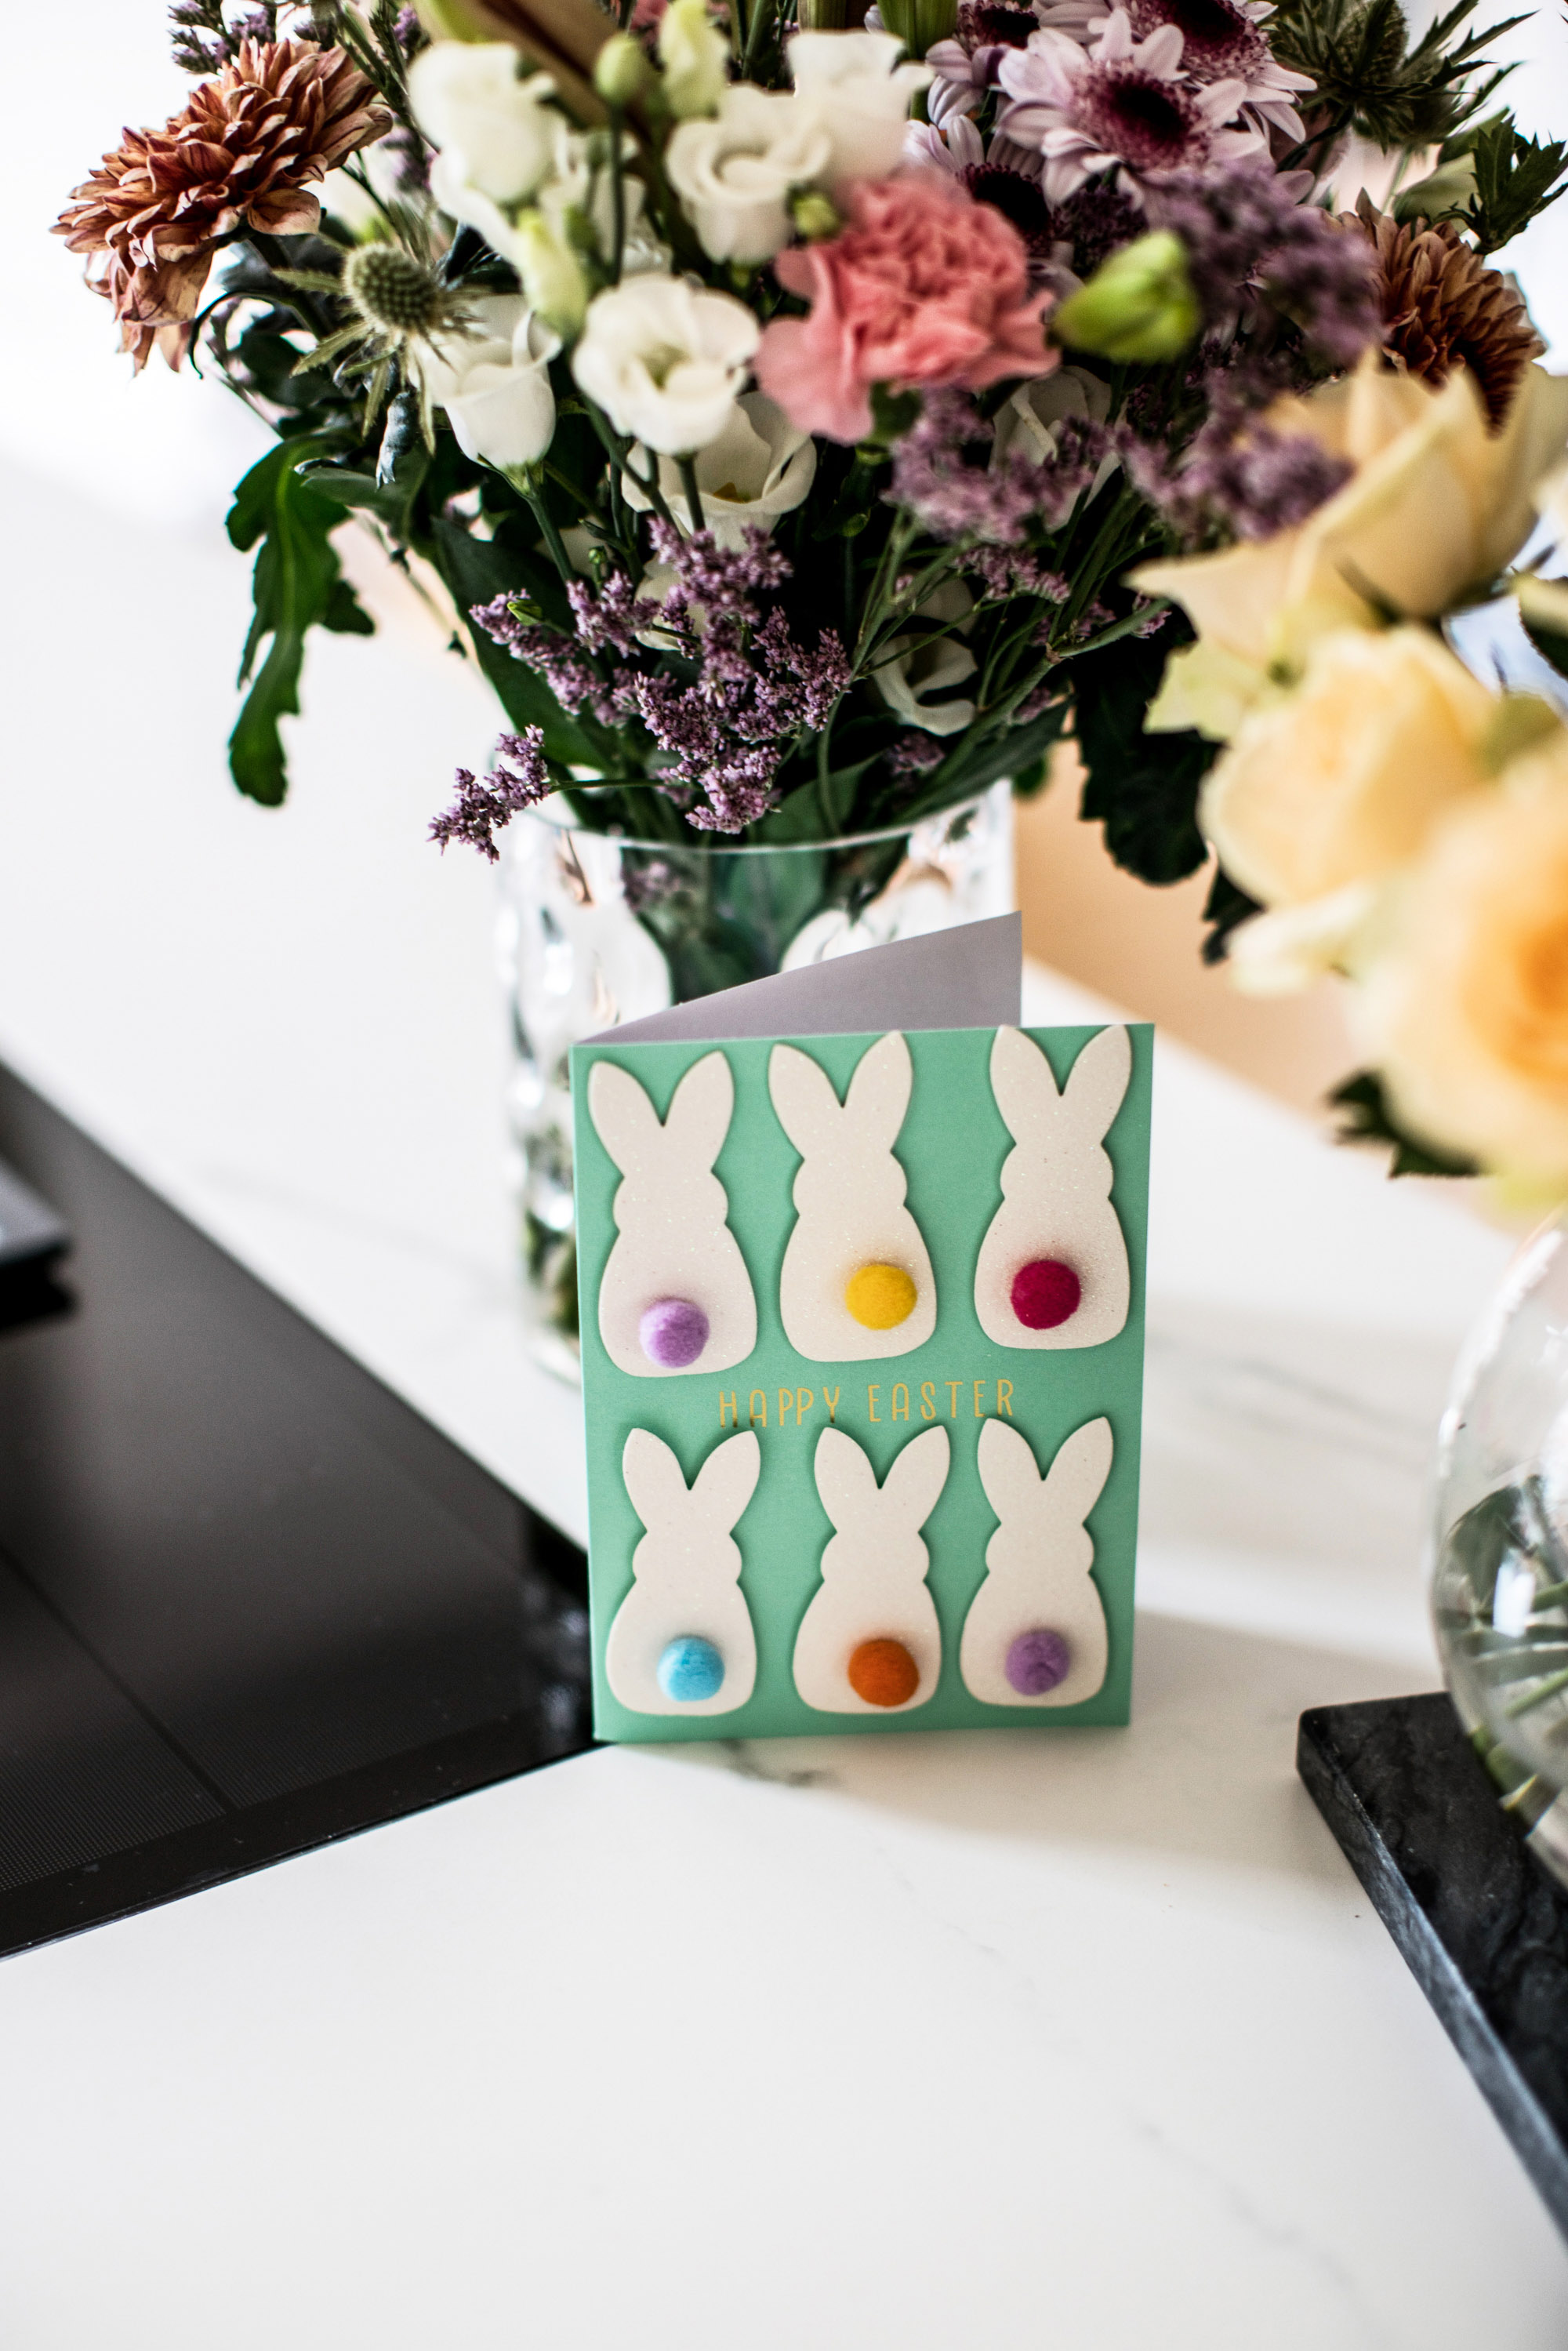 Interior Update: Spring / Easter Vibes mit Tk Maxx